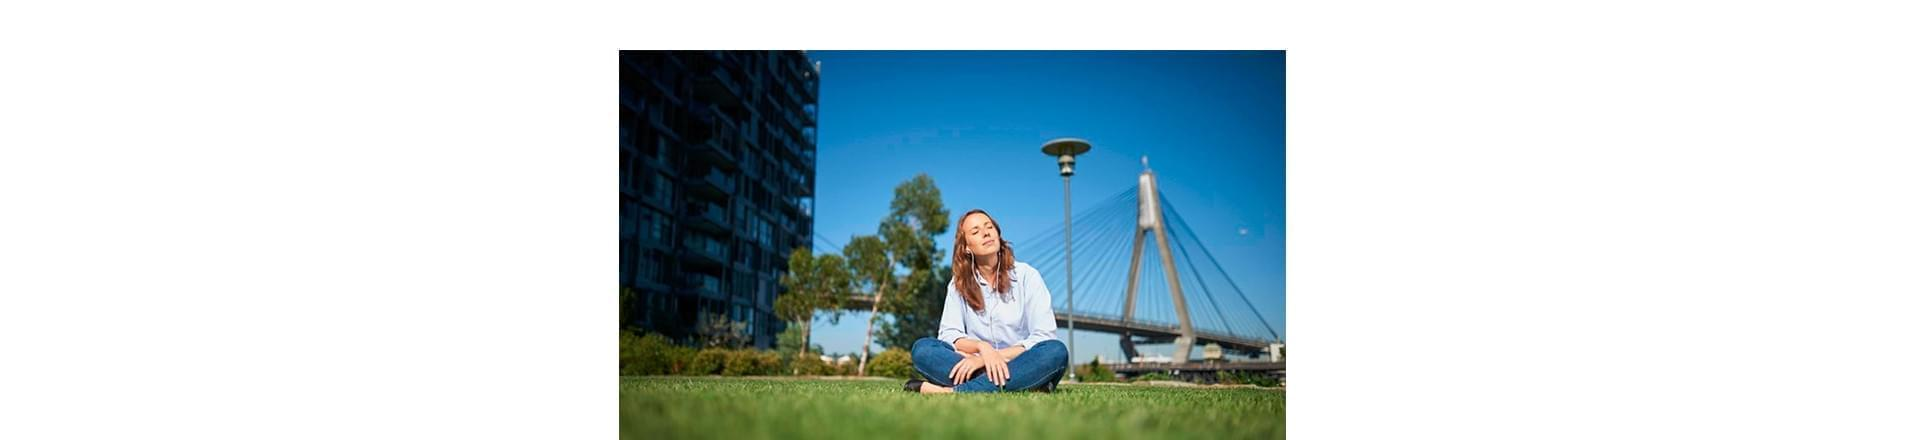 Woman sat in a field with green grass and blue sky with a building in the background